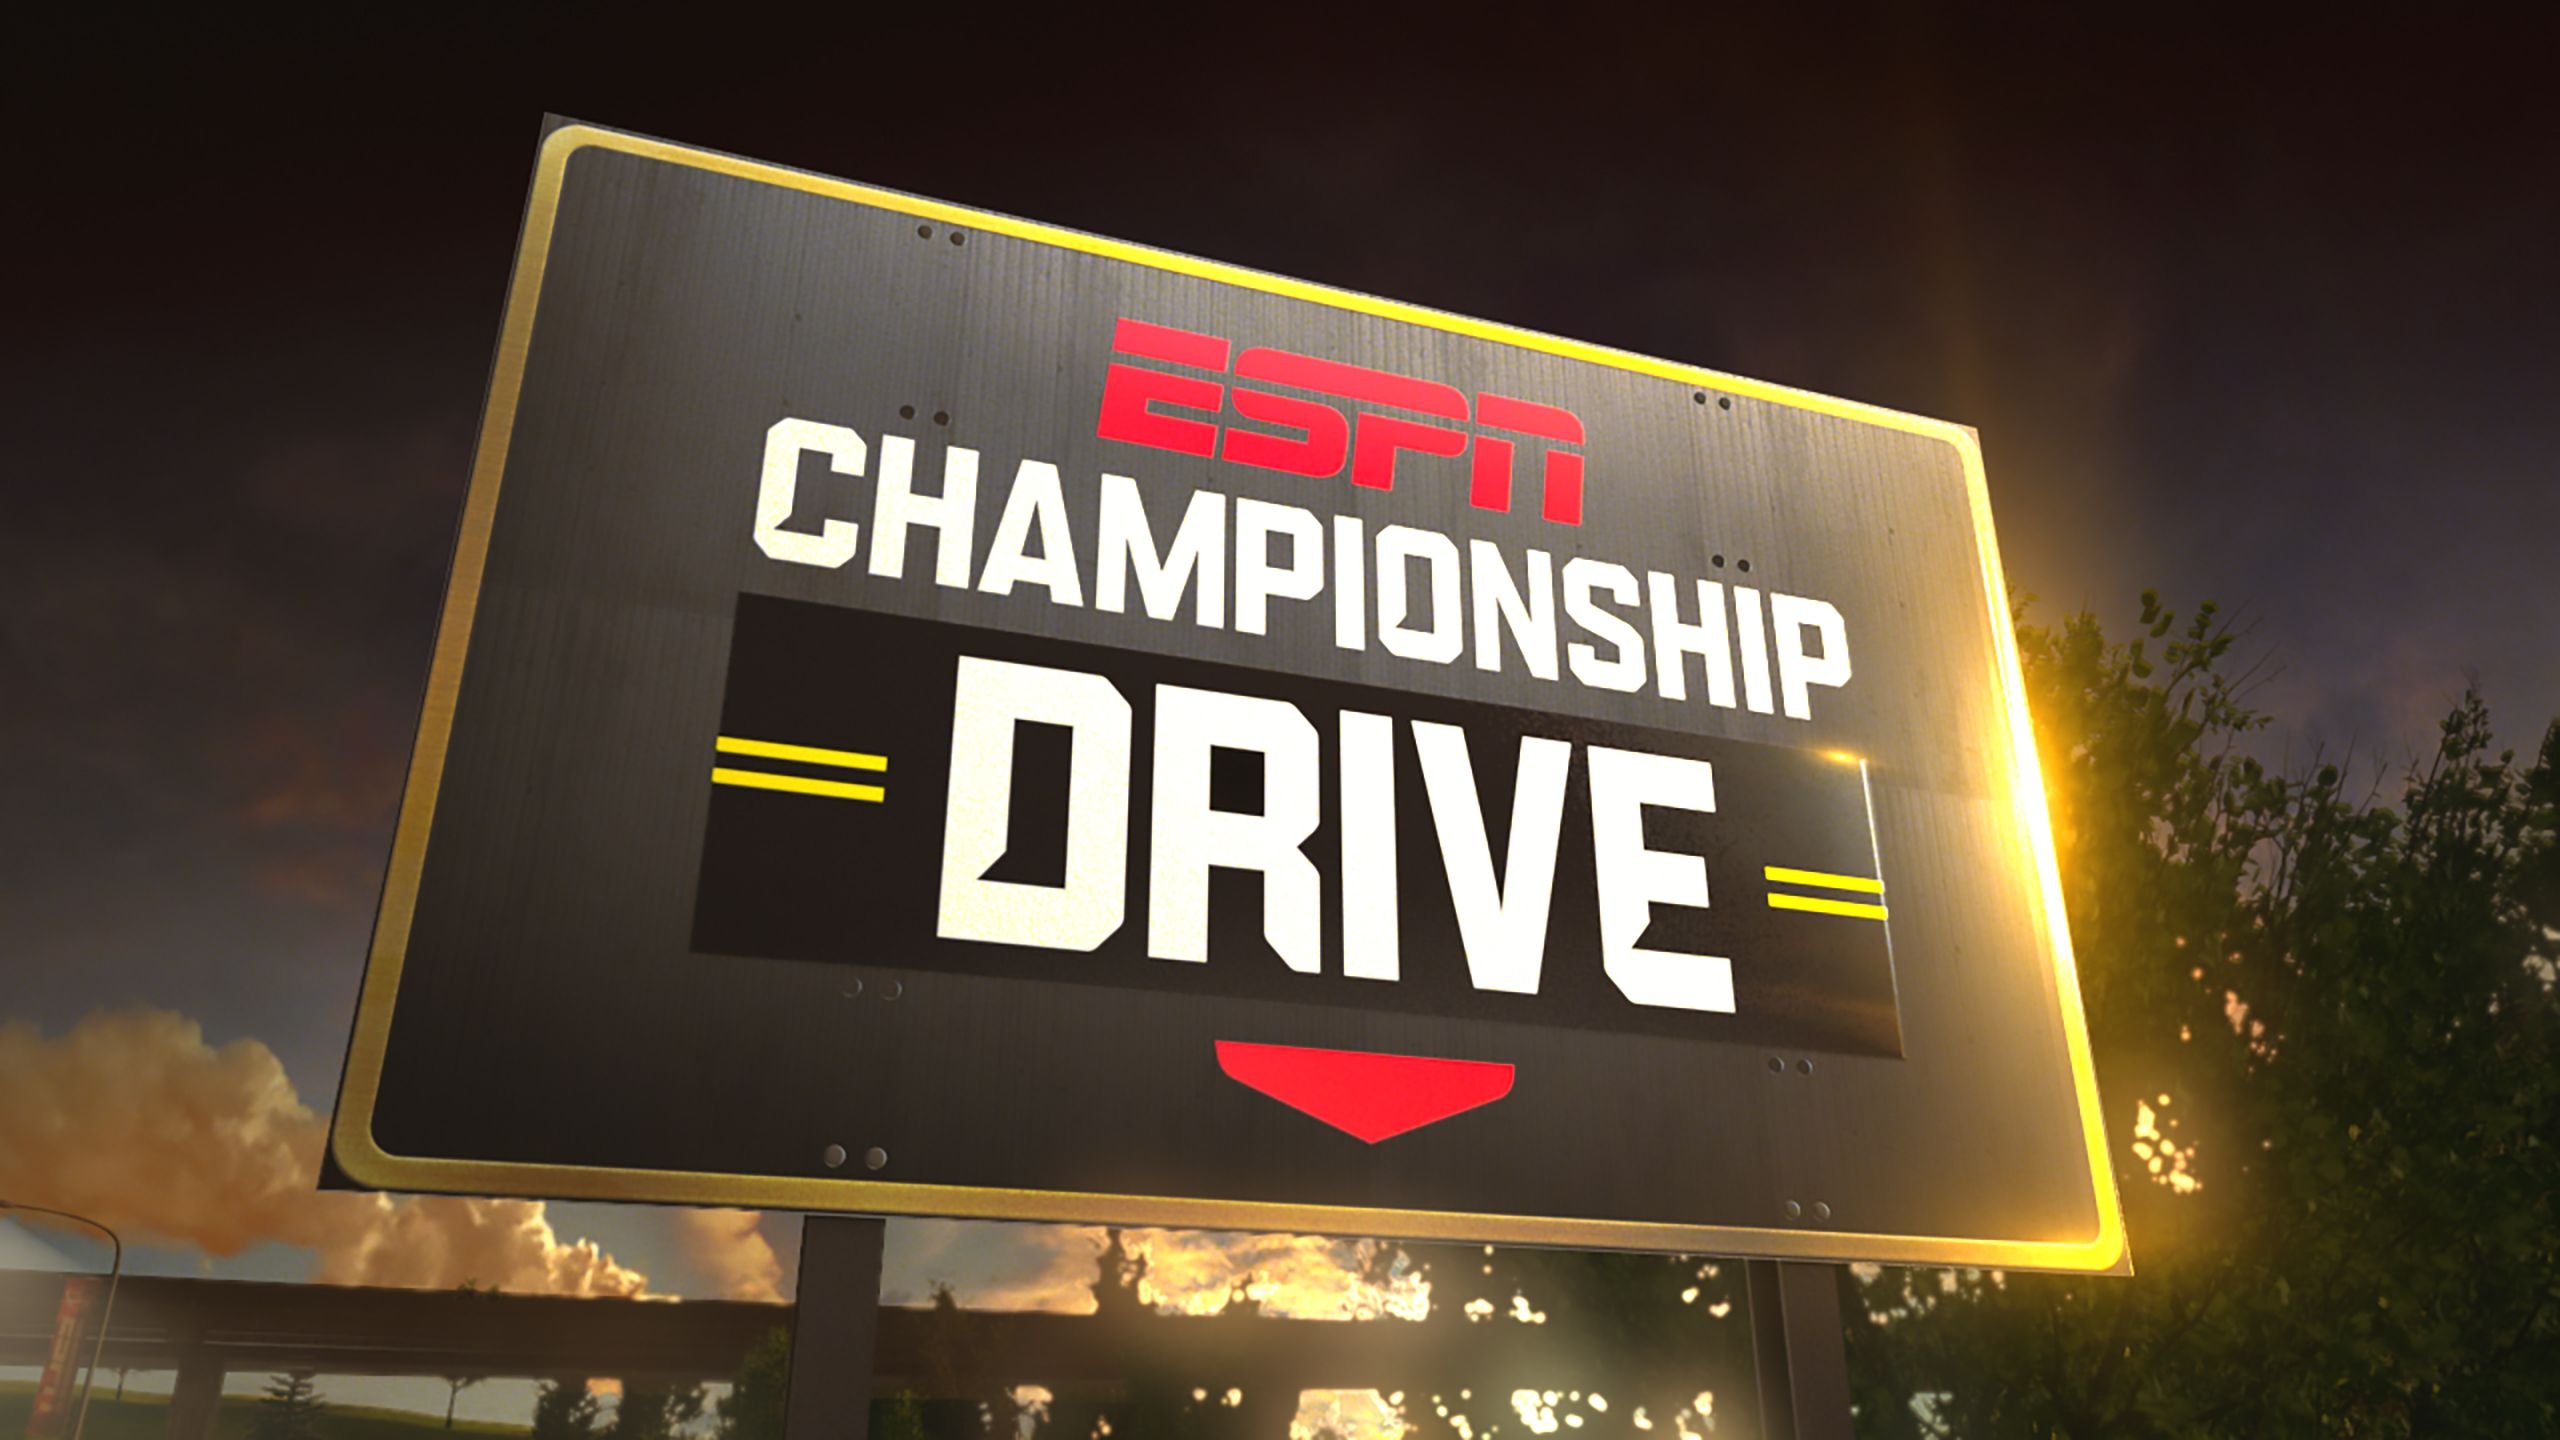 Championship Drive: Path to the Playoff Presented by Dr Pepper